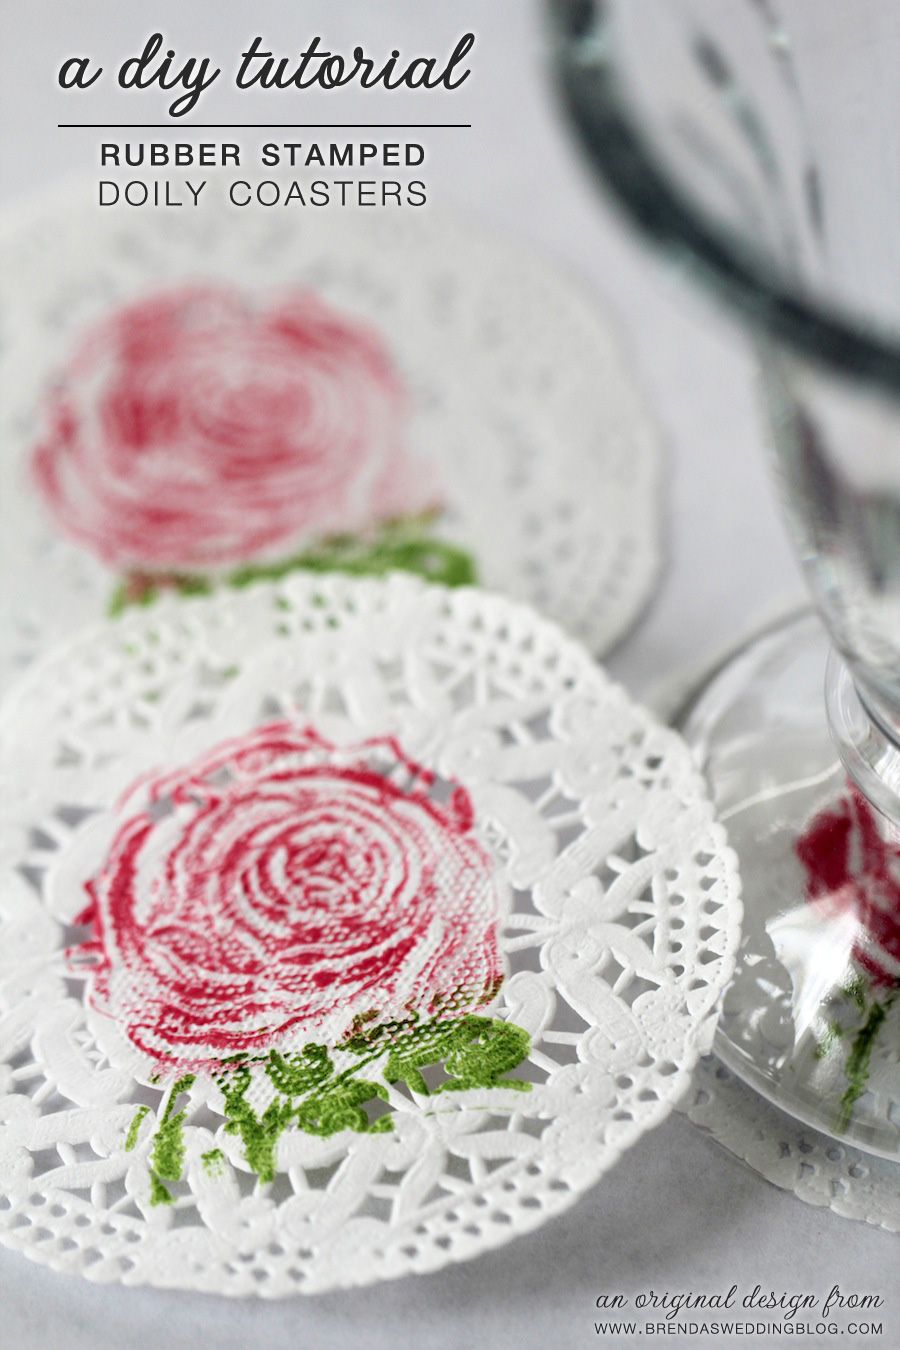 DIY Tutorial for Rubber Stamped Paper Doily Coasters | an original creation from www.brendasweddingblog.com